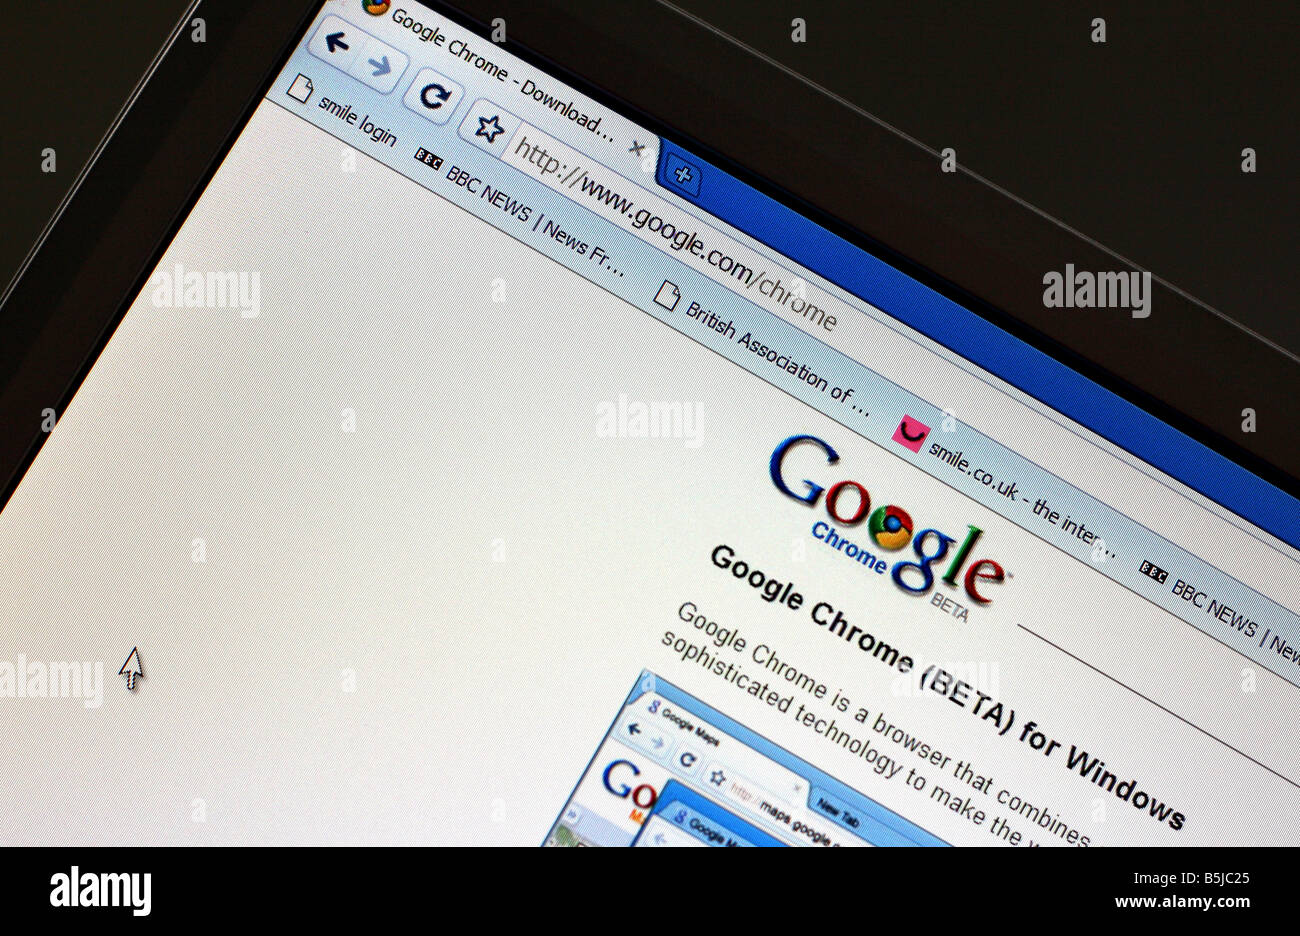 New Internet browser Google Chrome launched - Stock Image